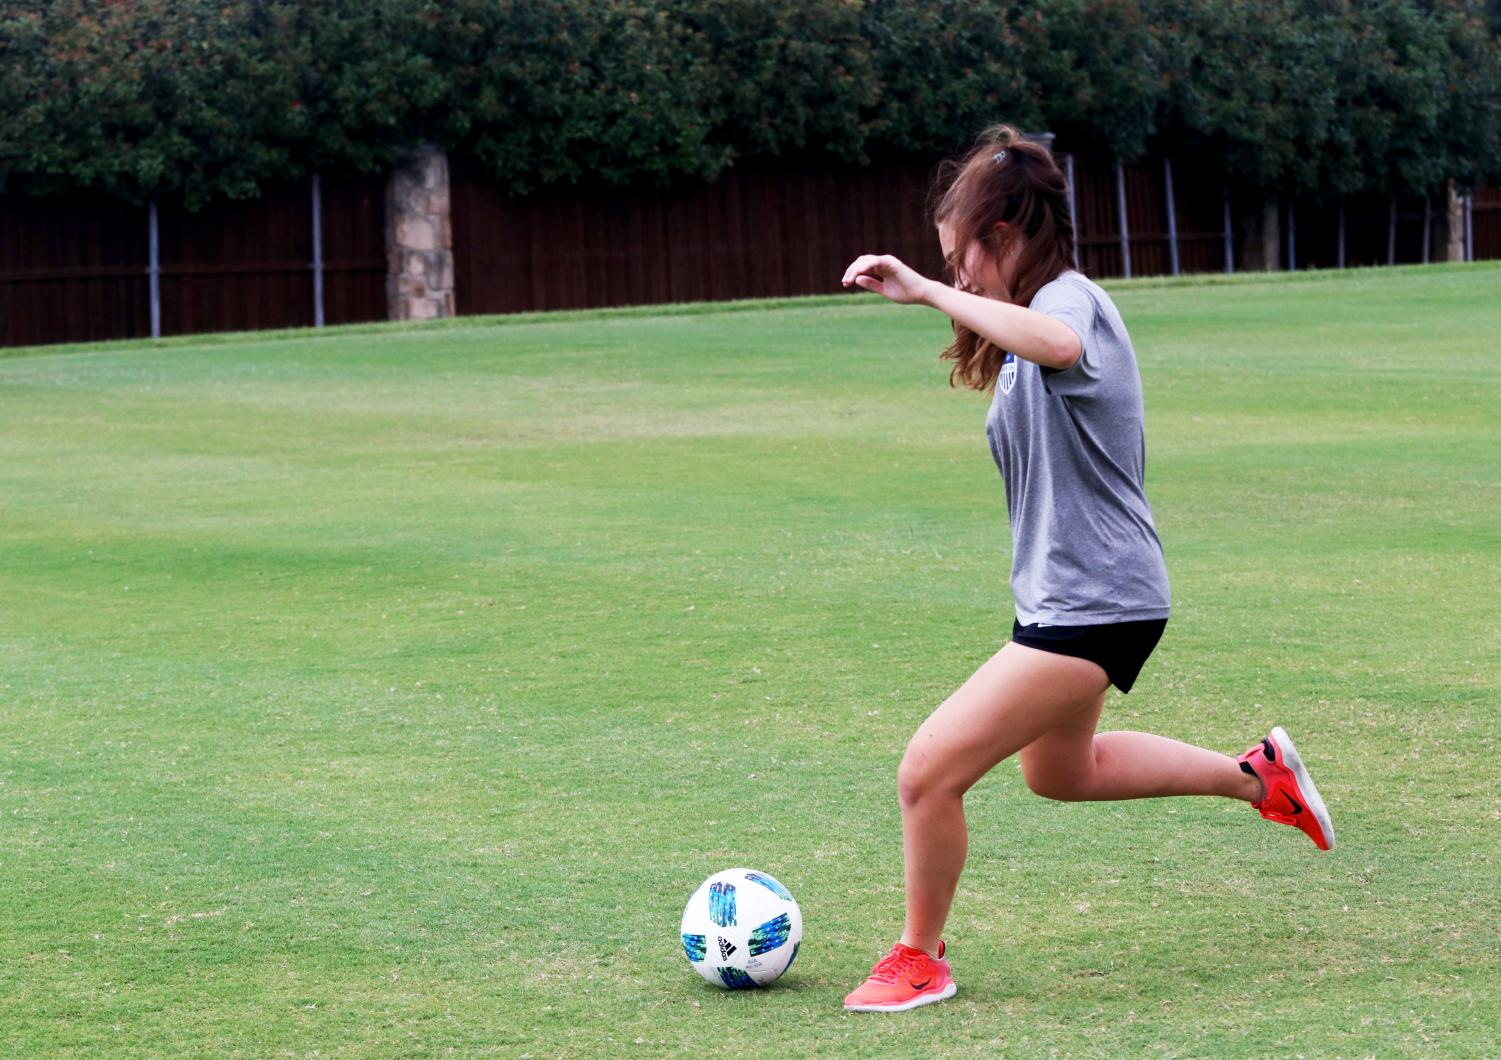 Senior midfielder Ava Meyer practices shooting drills outside of school. The team practices everyday in order to prepare for the upcoming soccer season.